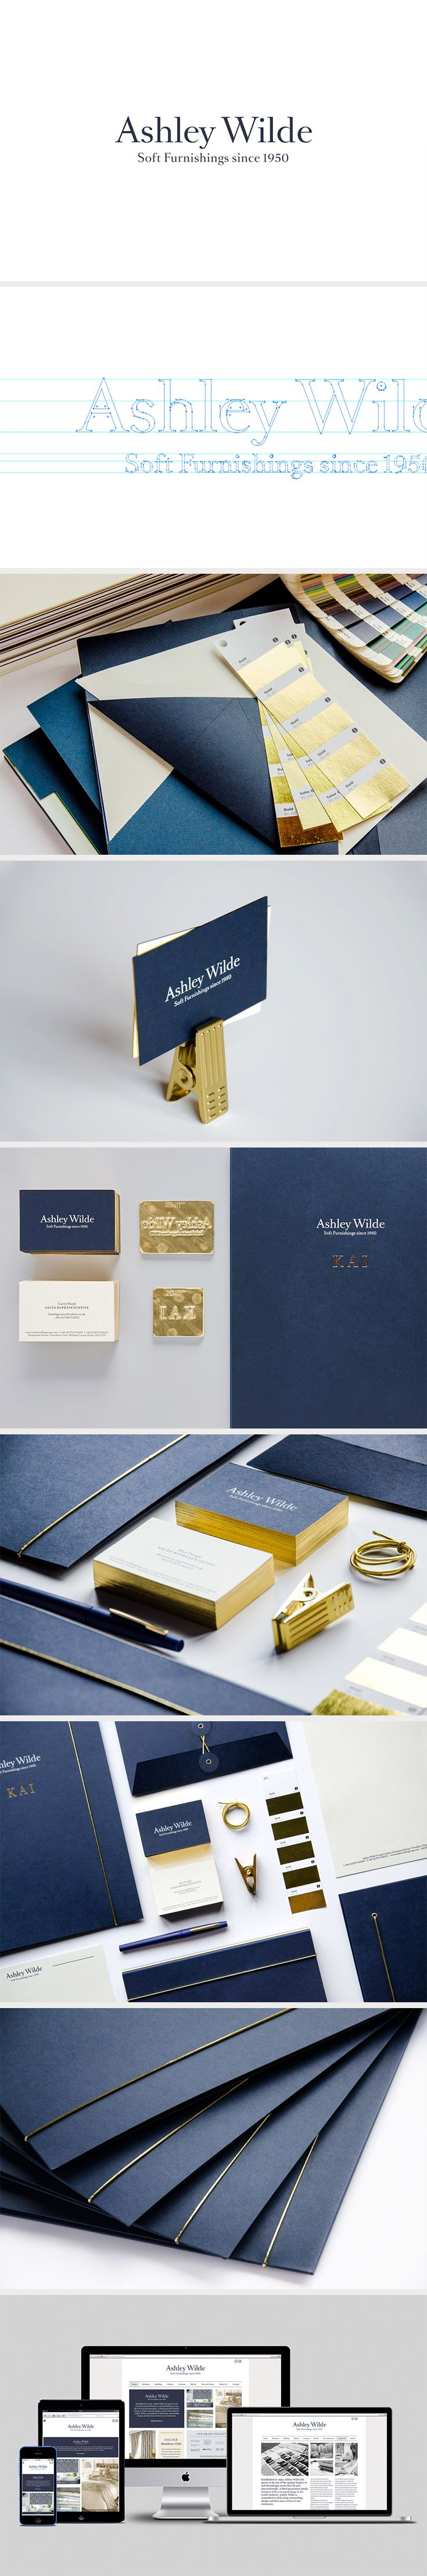 Ashley Wilde Brand Repositioning - The colors are great. Peacock blue with gold.